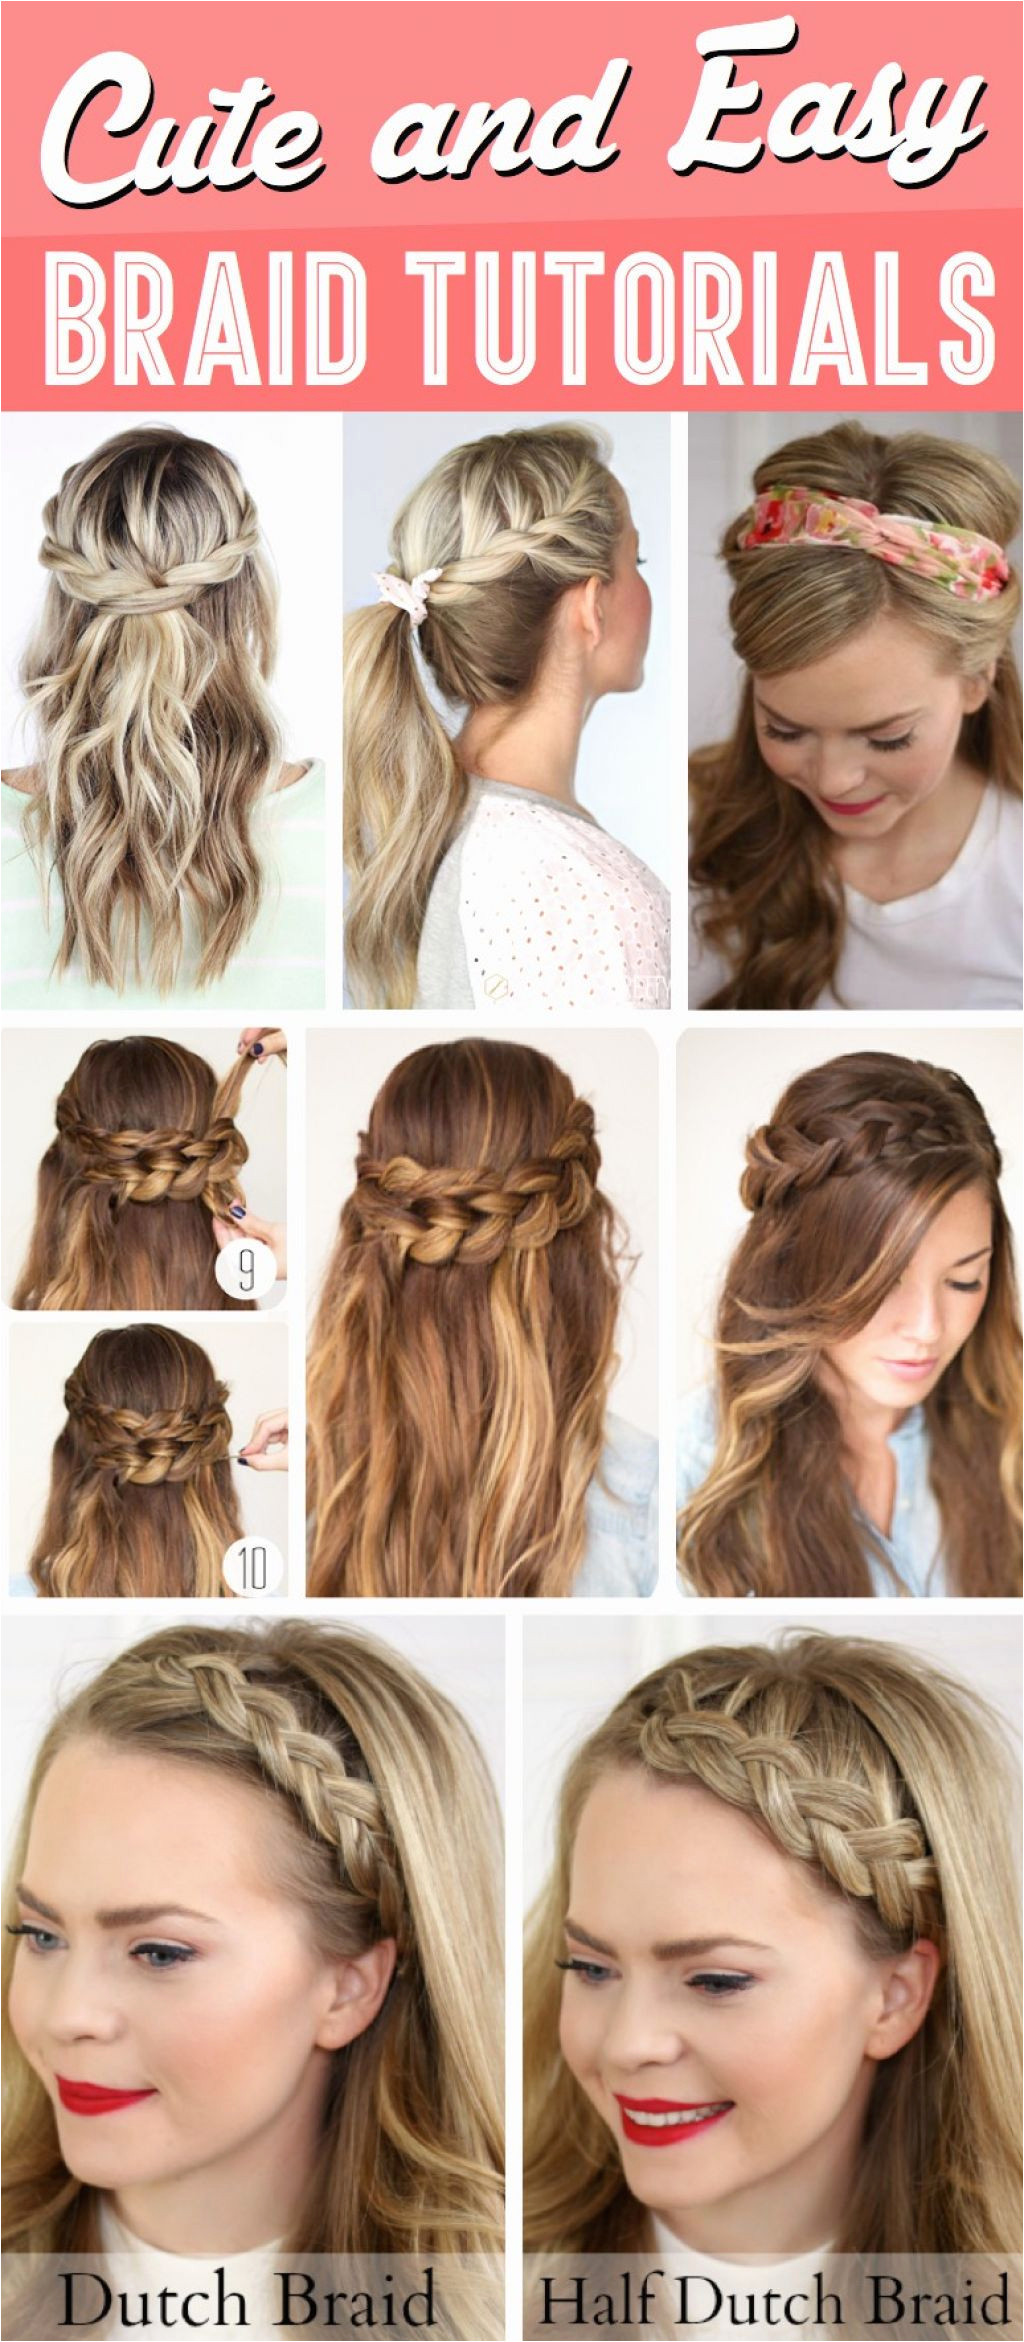 Hairstyles for Short Hair for School Awesome original Hairstyles for School Unique School Dance Hairstyles for